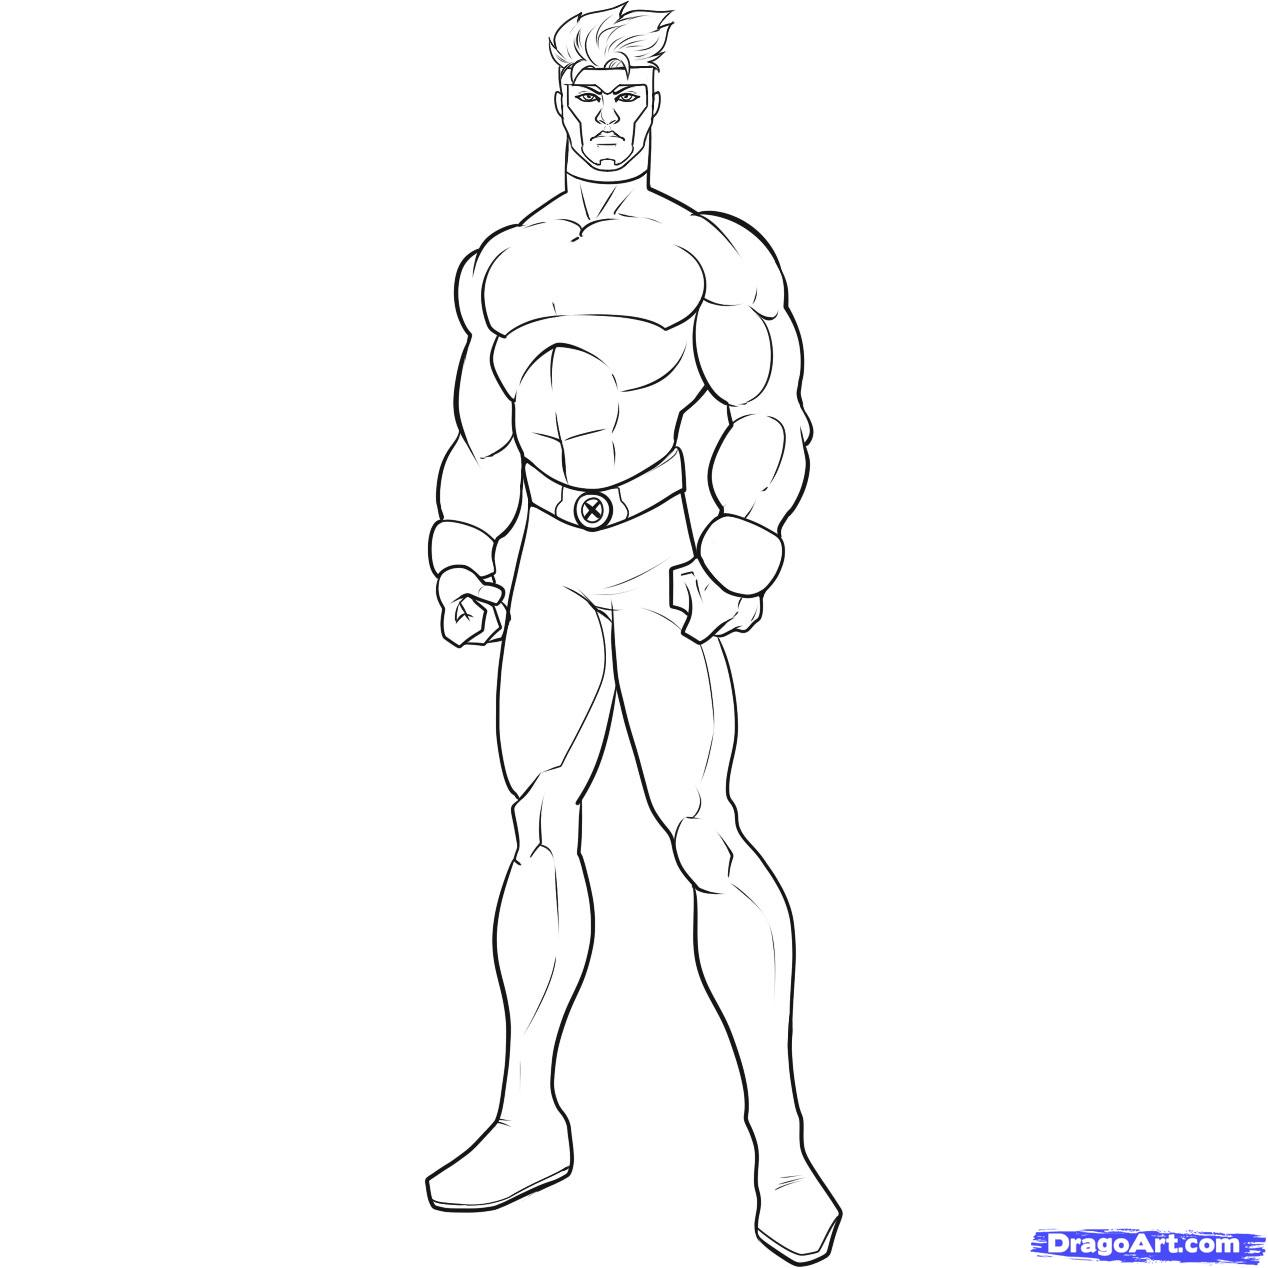 1268x1268 How To Draw Havok, Step By Step, Marvel Characters, Draw Marvel